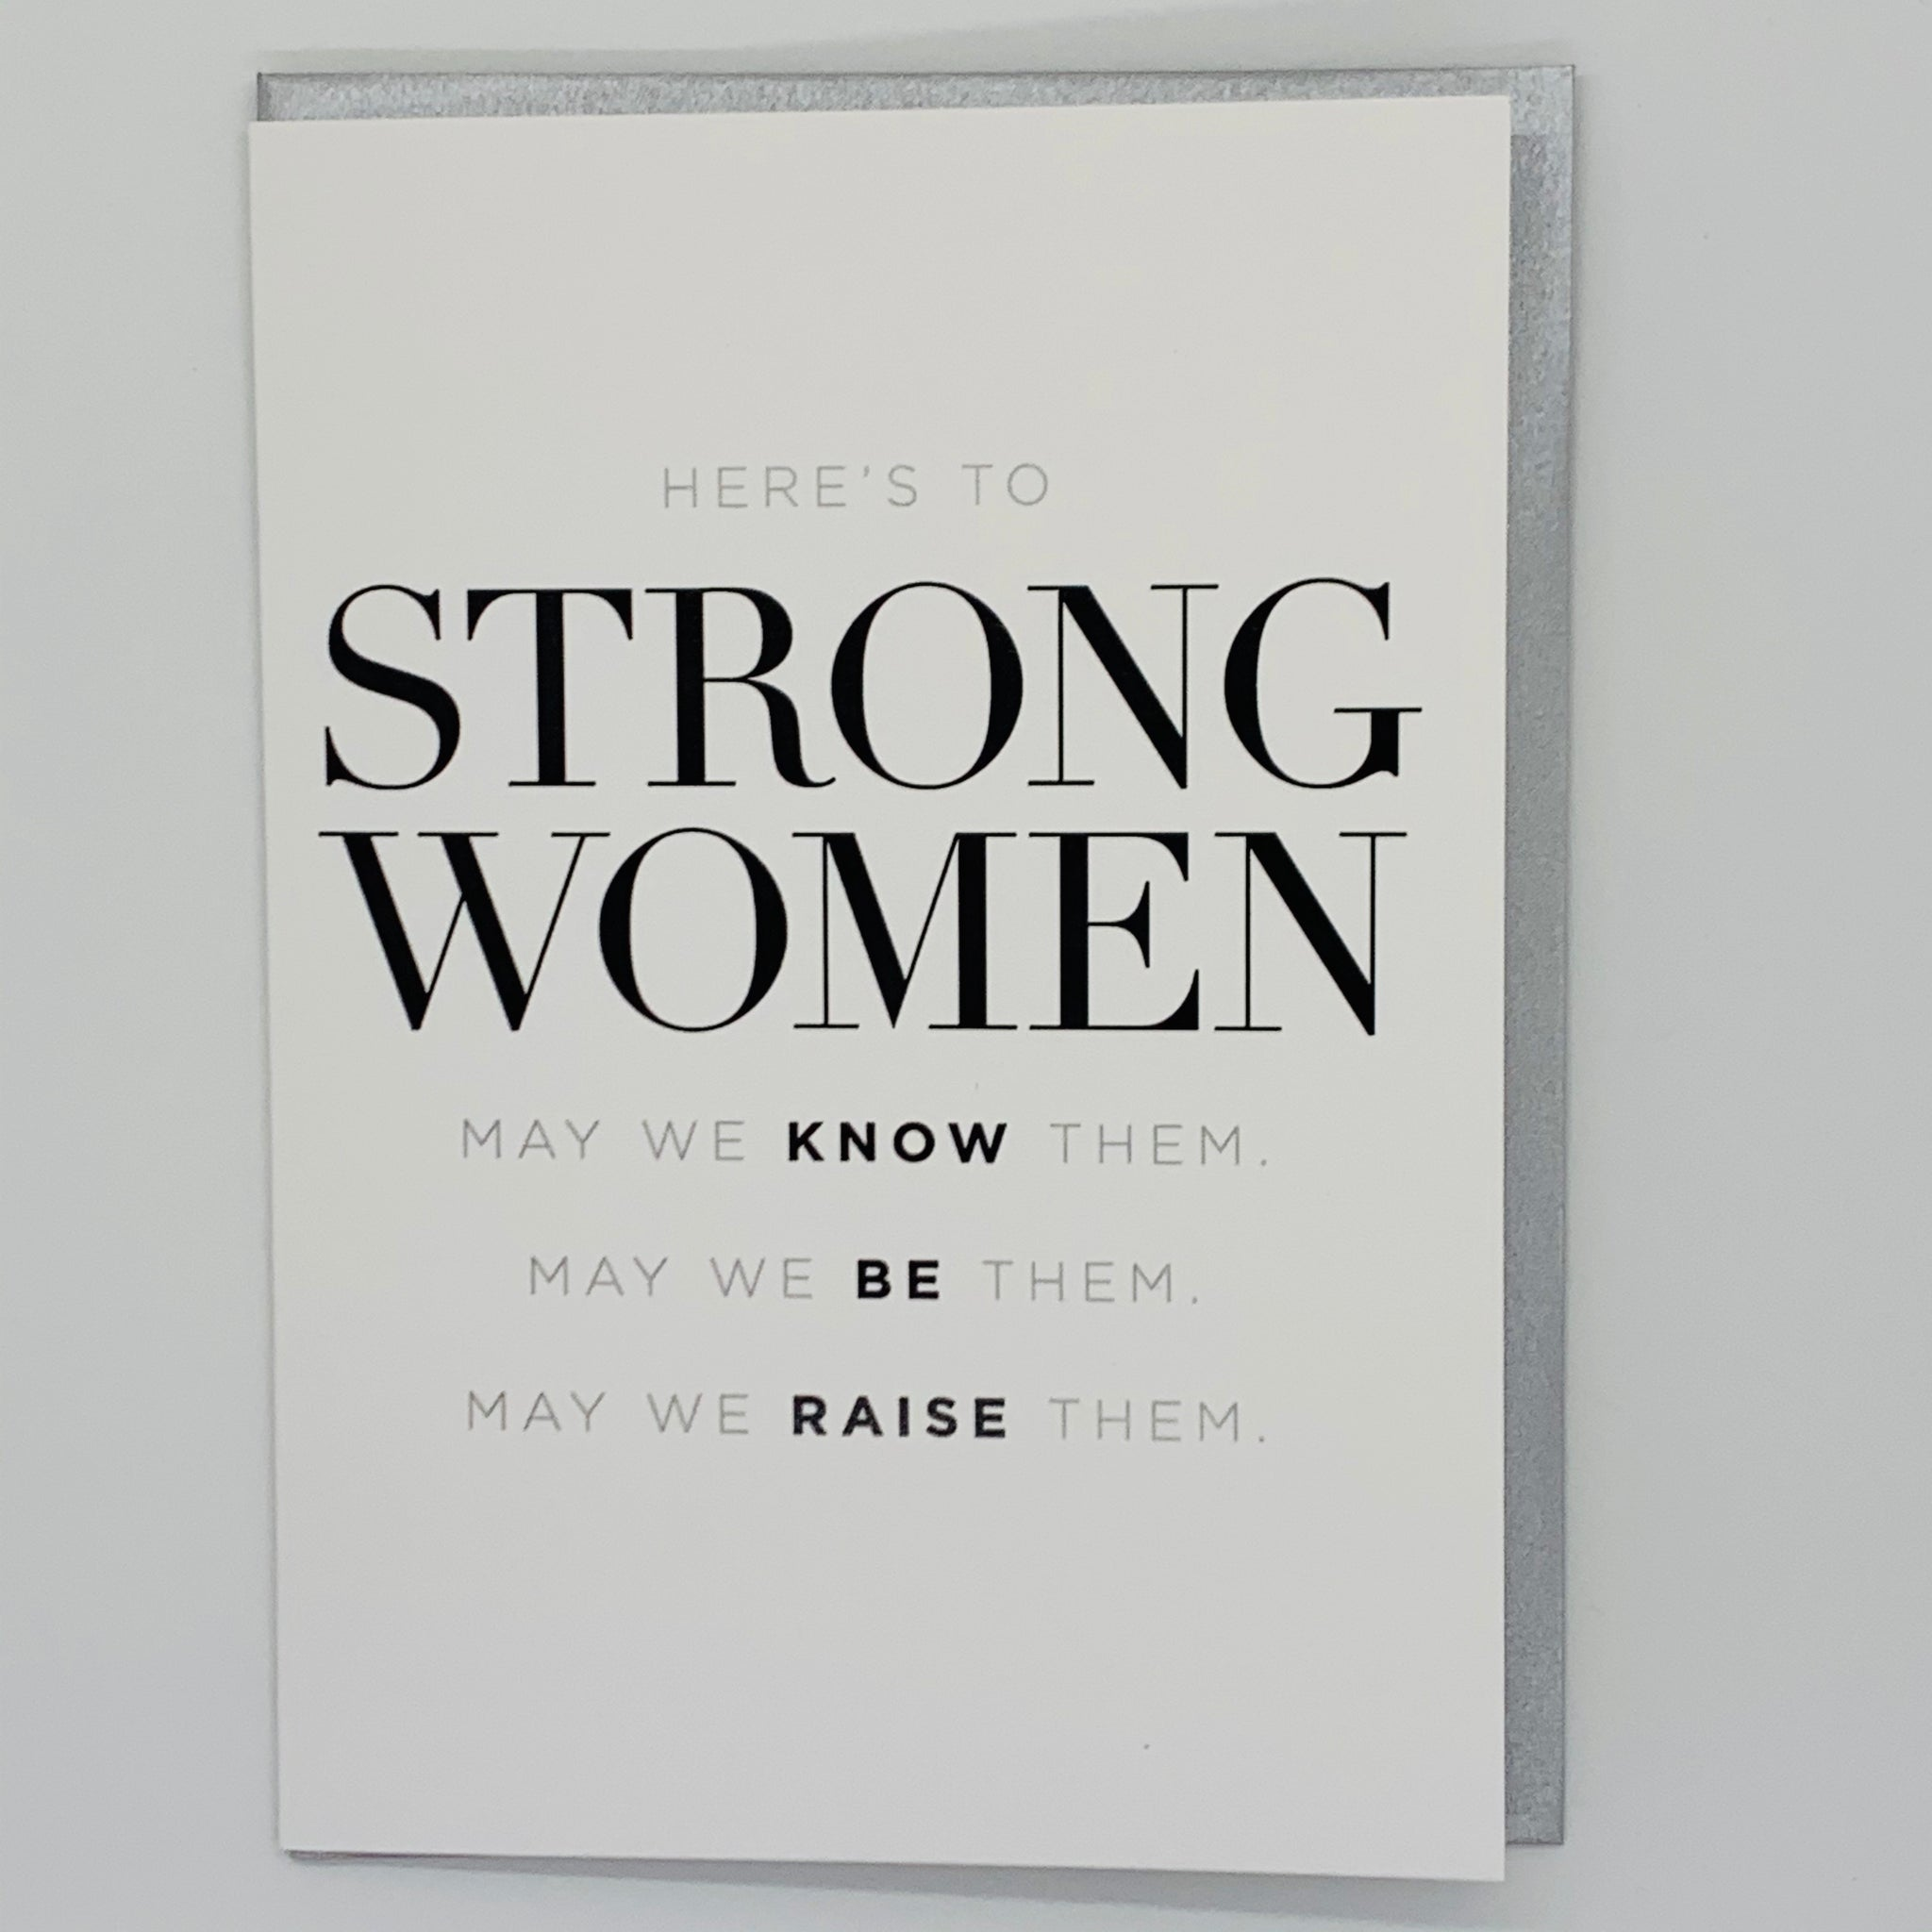 Here to Strong Women